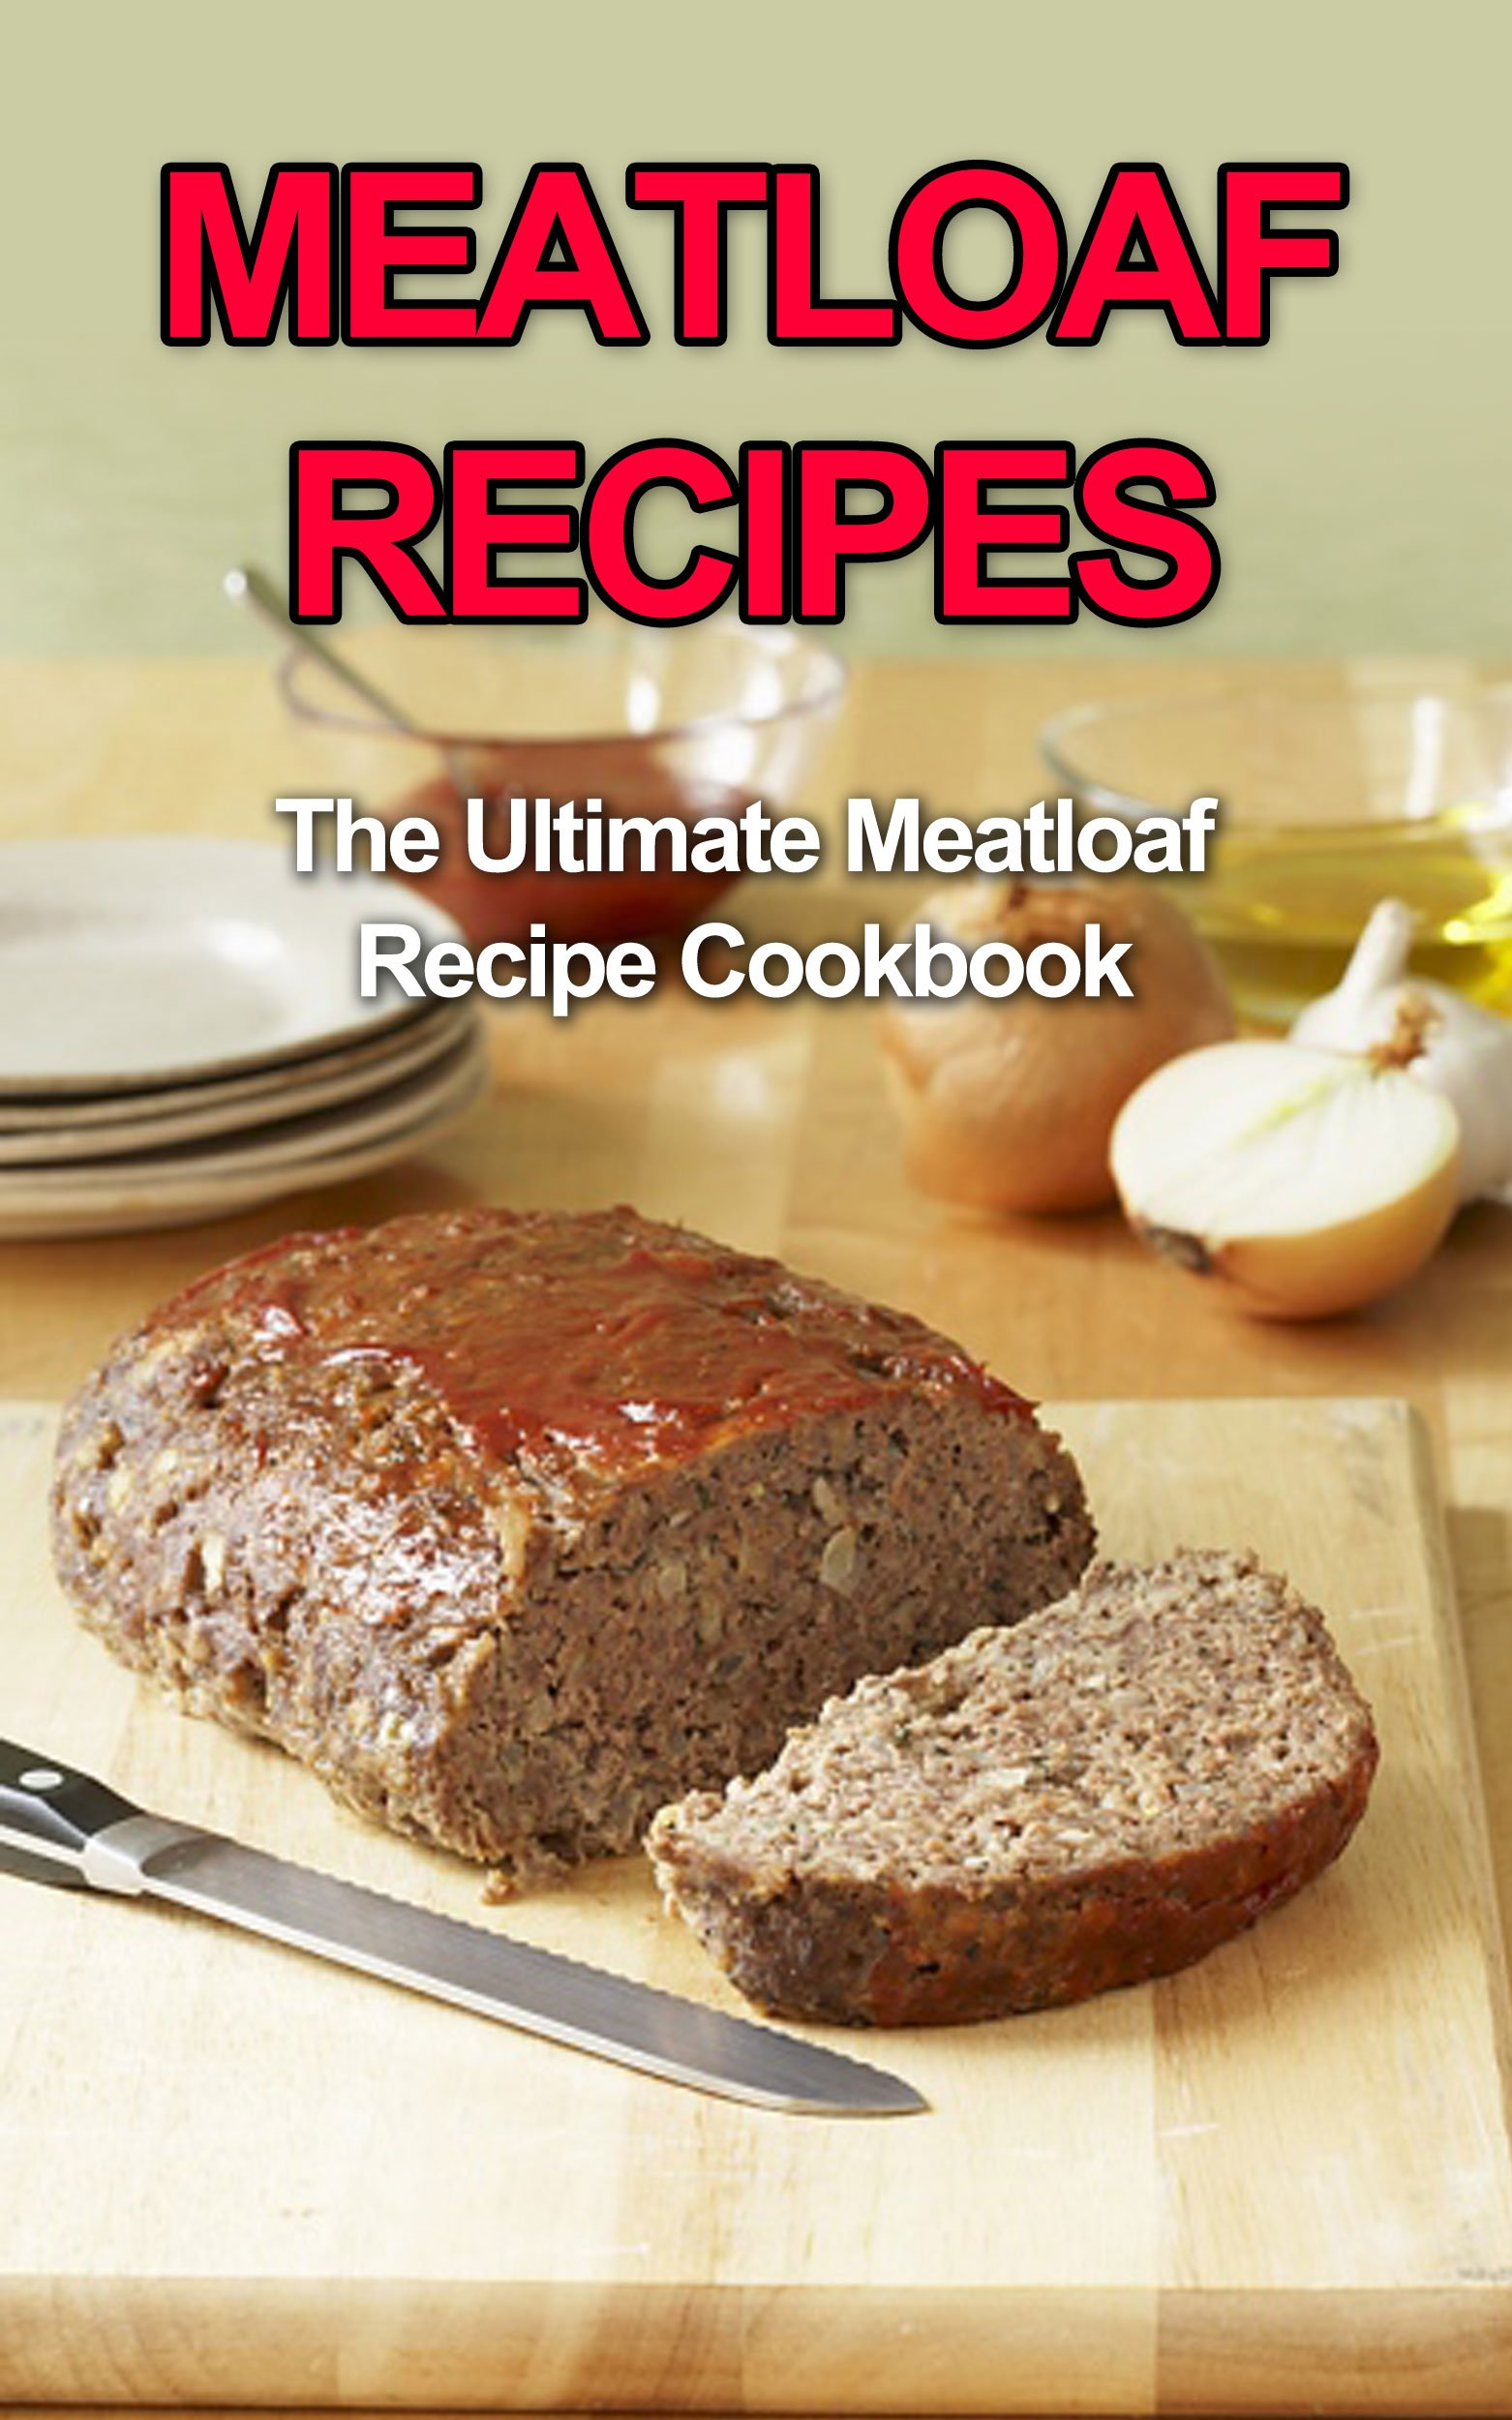 Image OfMeatloaf Recipes: The Ultimate Meatloaf Recipe Cookbook (English Edition)